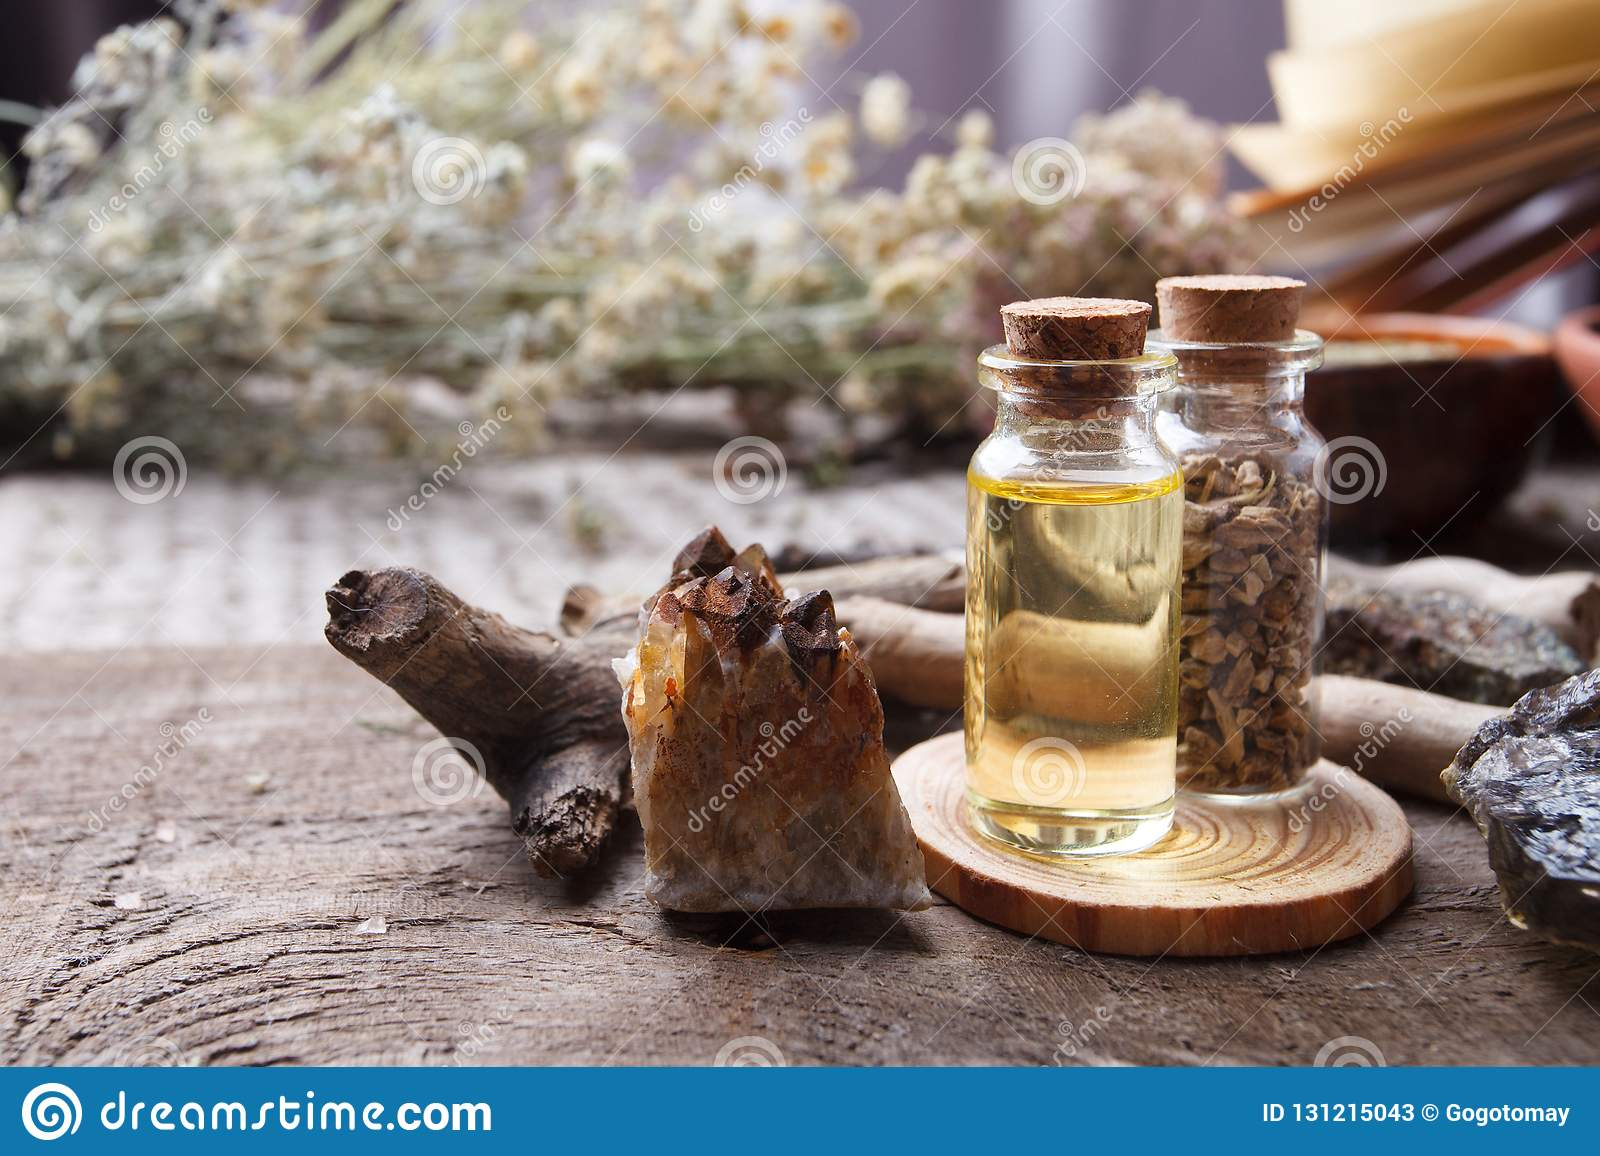 Bottles with herbs, dry flowers, stones and magic objects on witch wooden table. Occult, esoteric, divination and wicca concept